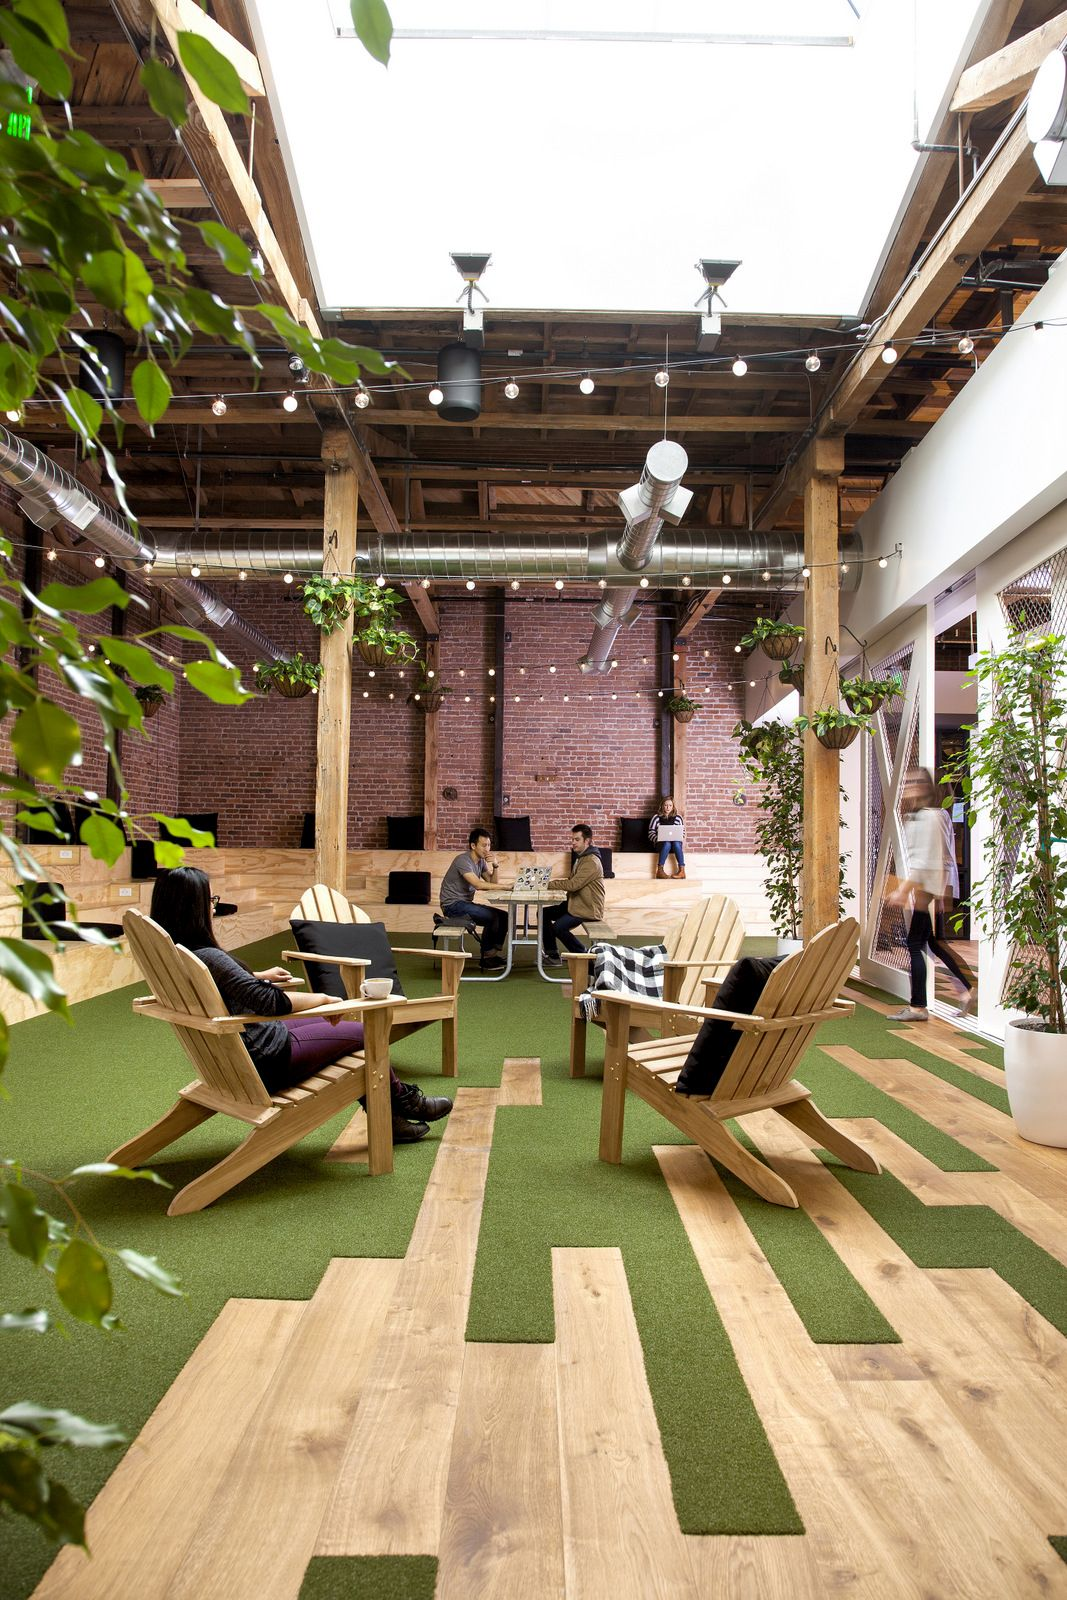 There's a space for everyone, including a green area with plants and an open ceiling